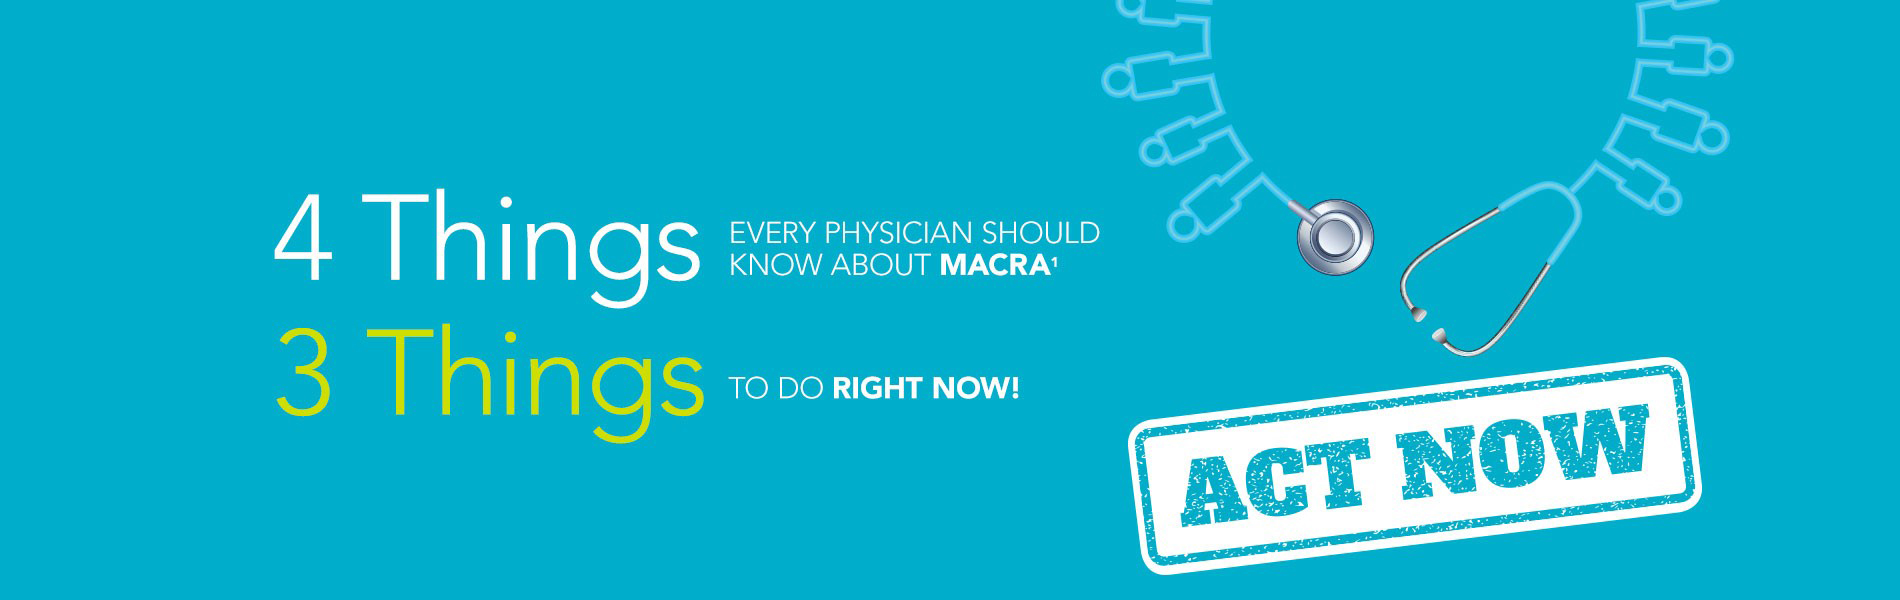 It's easier than you think to be a MACRA winner. Geneia's new e-book simplifies the actions you must take now.